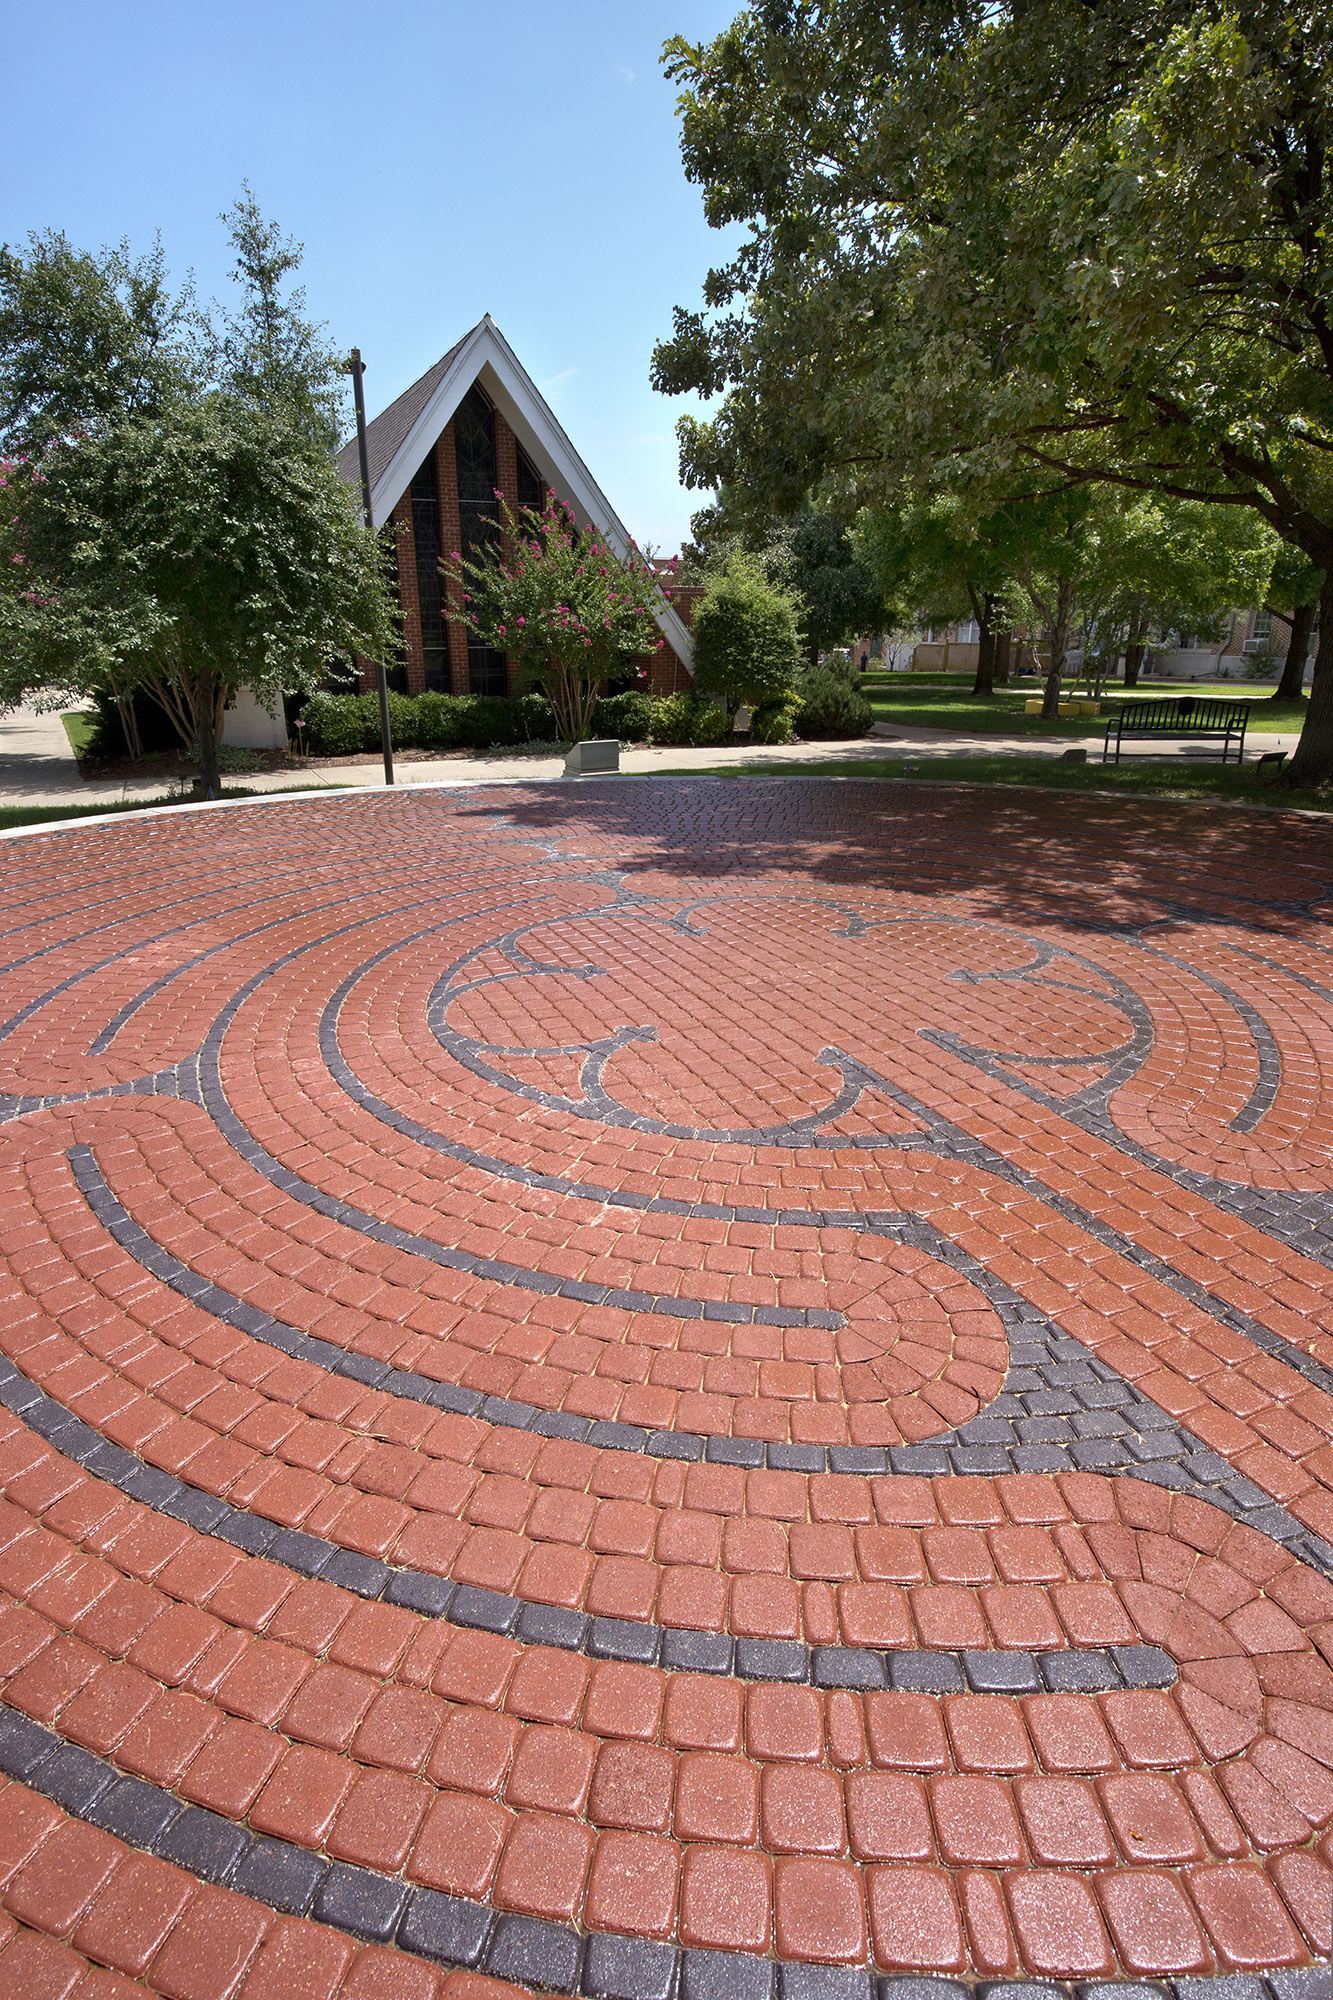 The University of Central Oklahoma will dedicate its new labyrinth at a public ceremony at 2 p.m. Sept. 6.